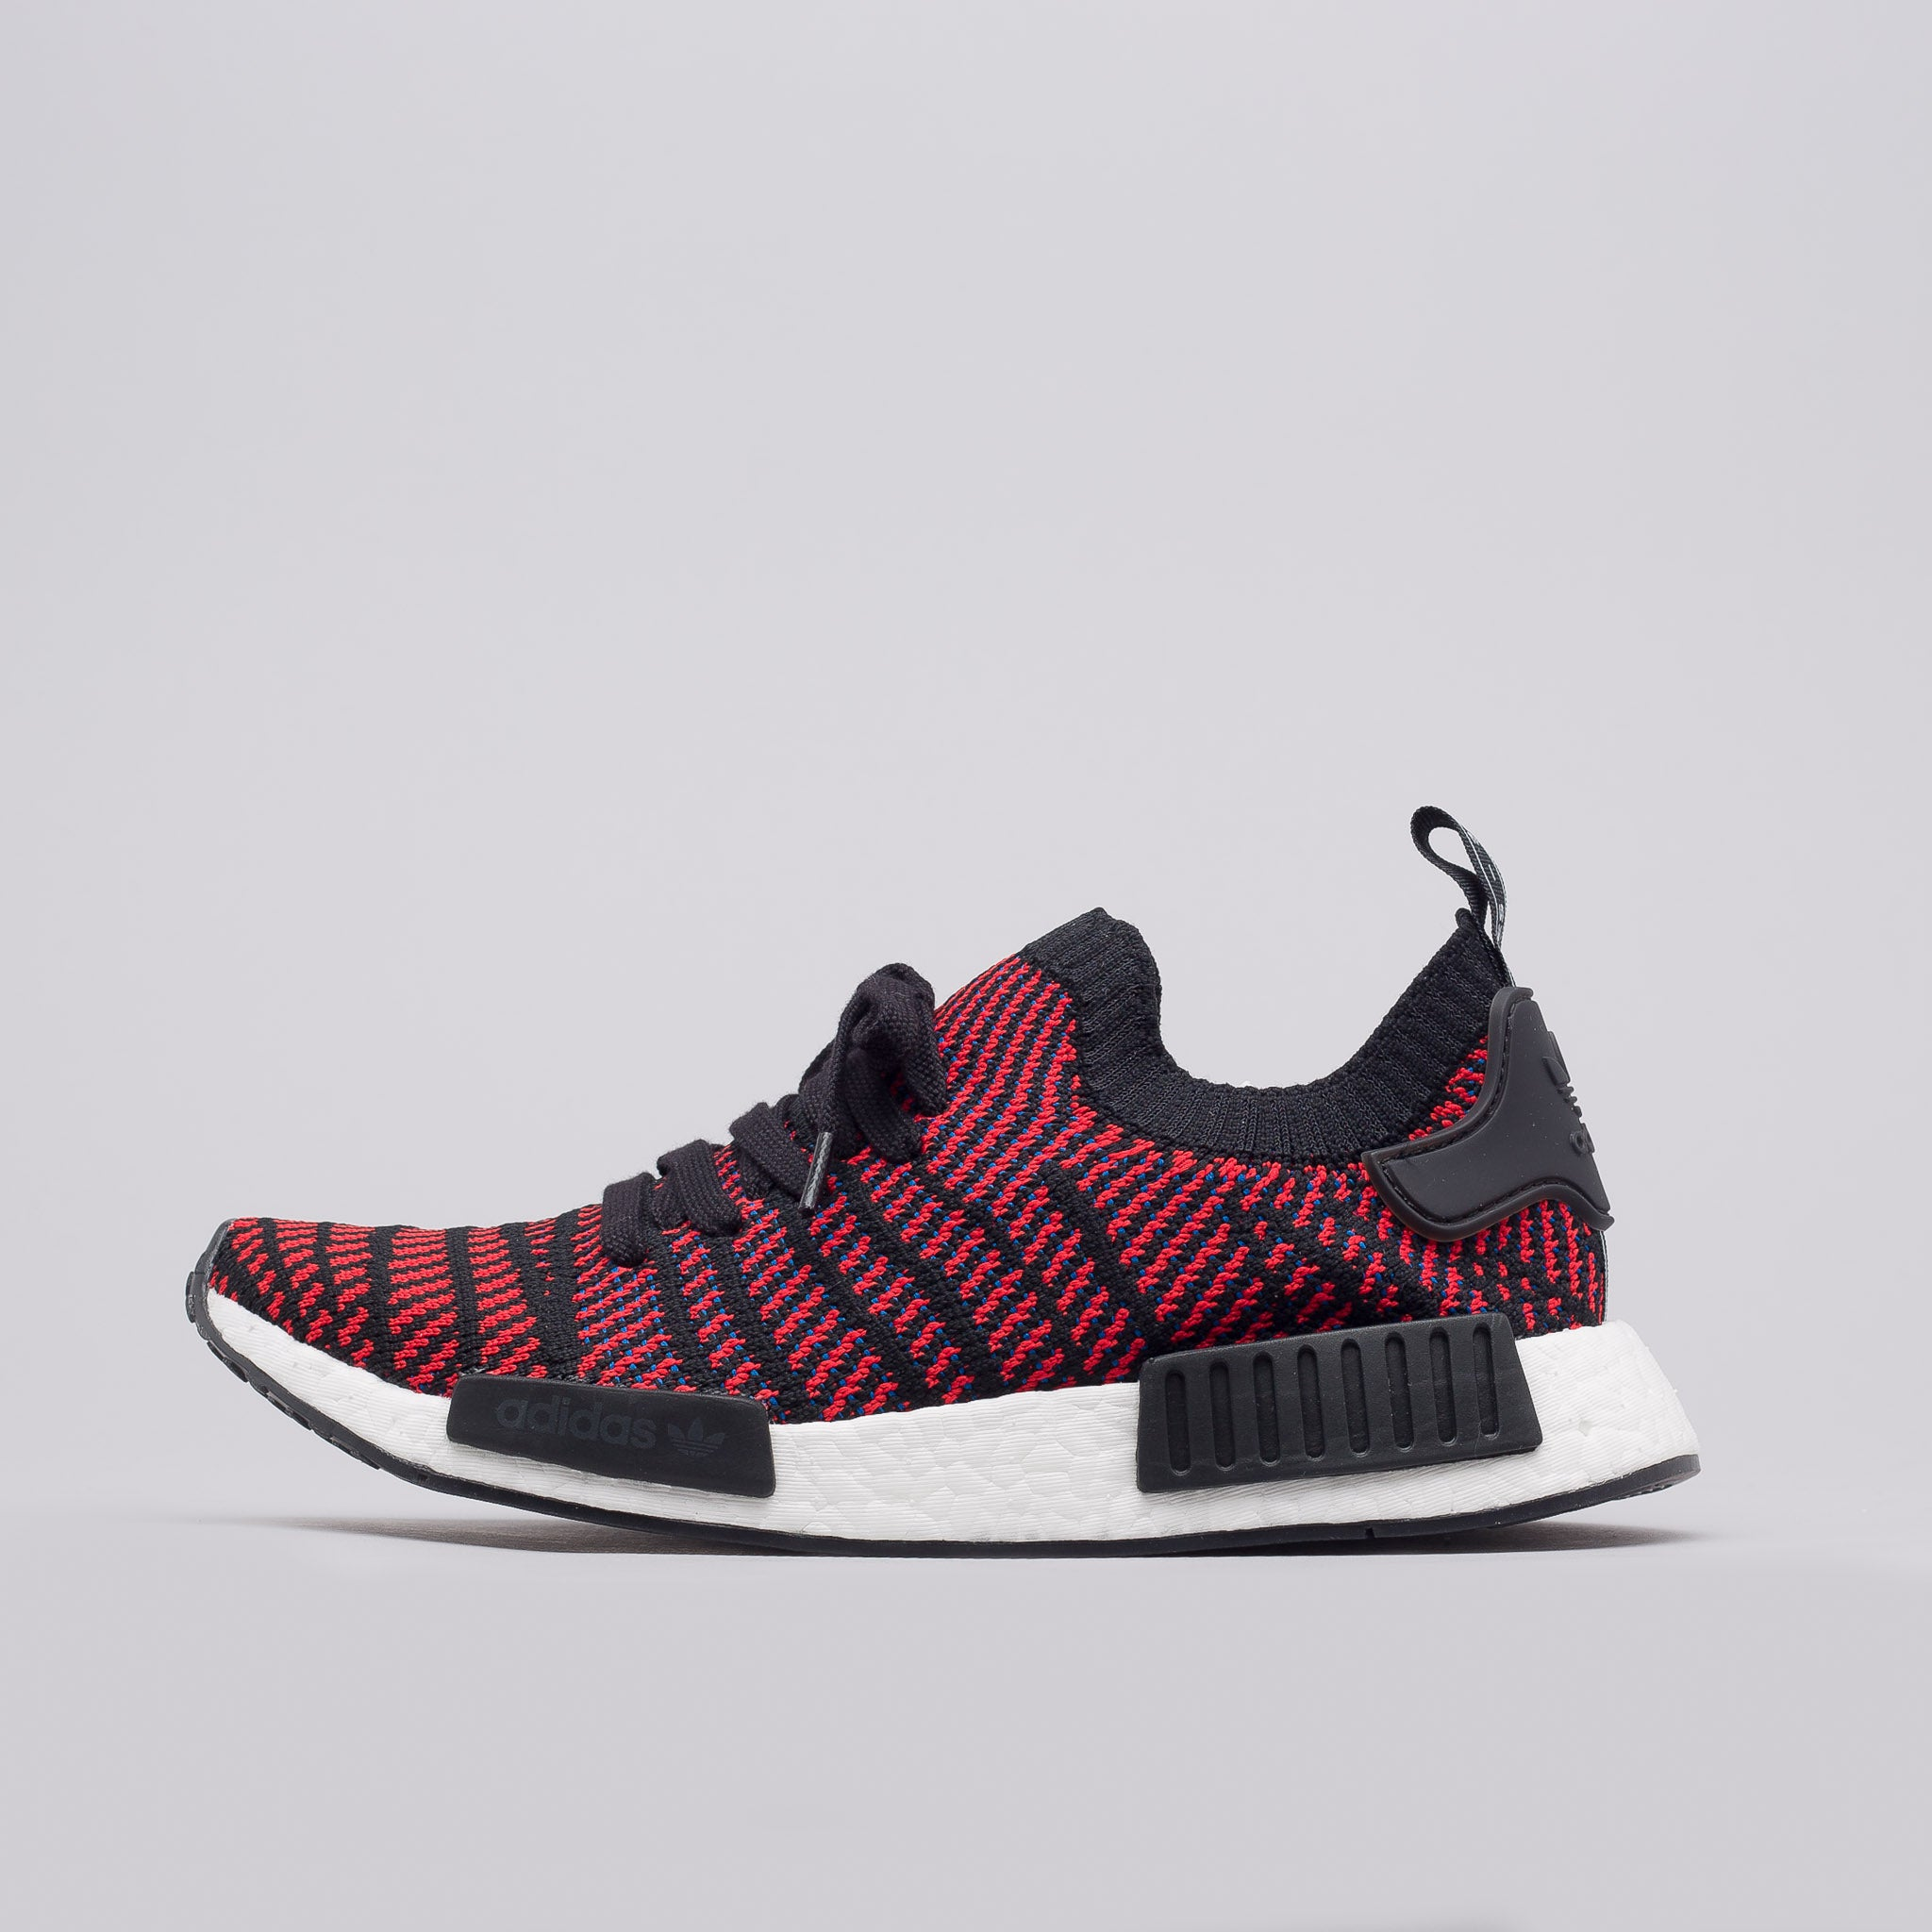 Adidas NMD R1 Primeknit Boost Black Shock Pink Athletic Sneaker